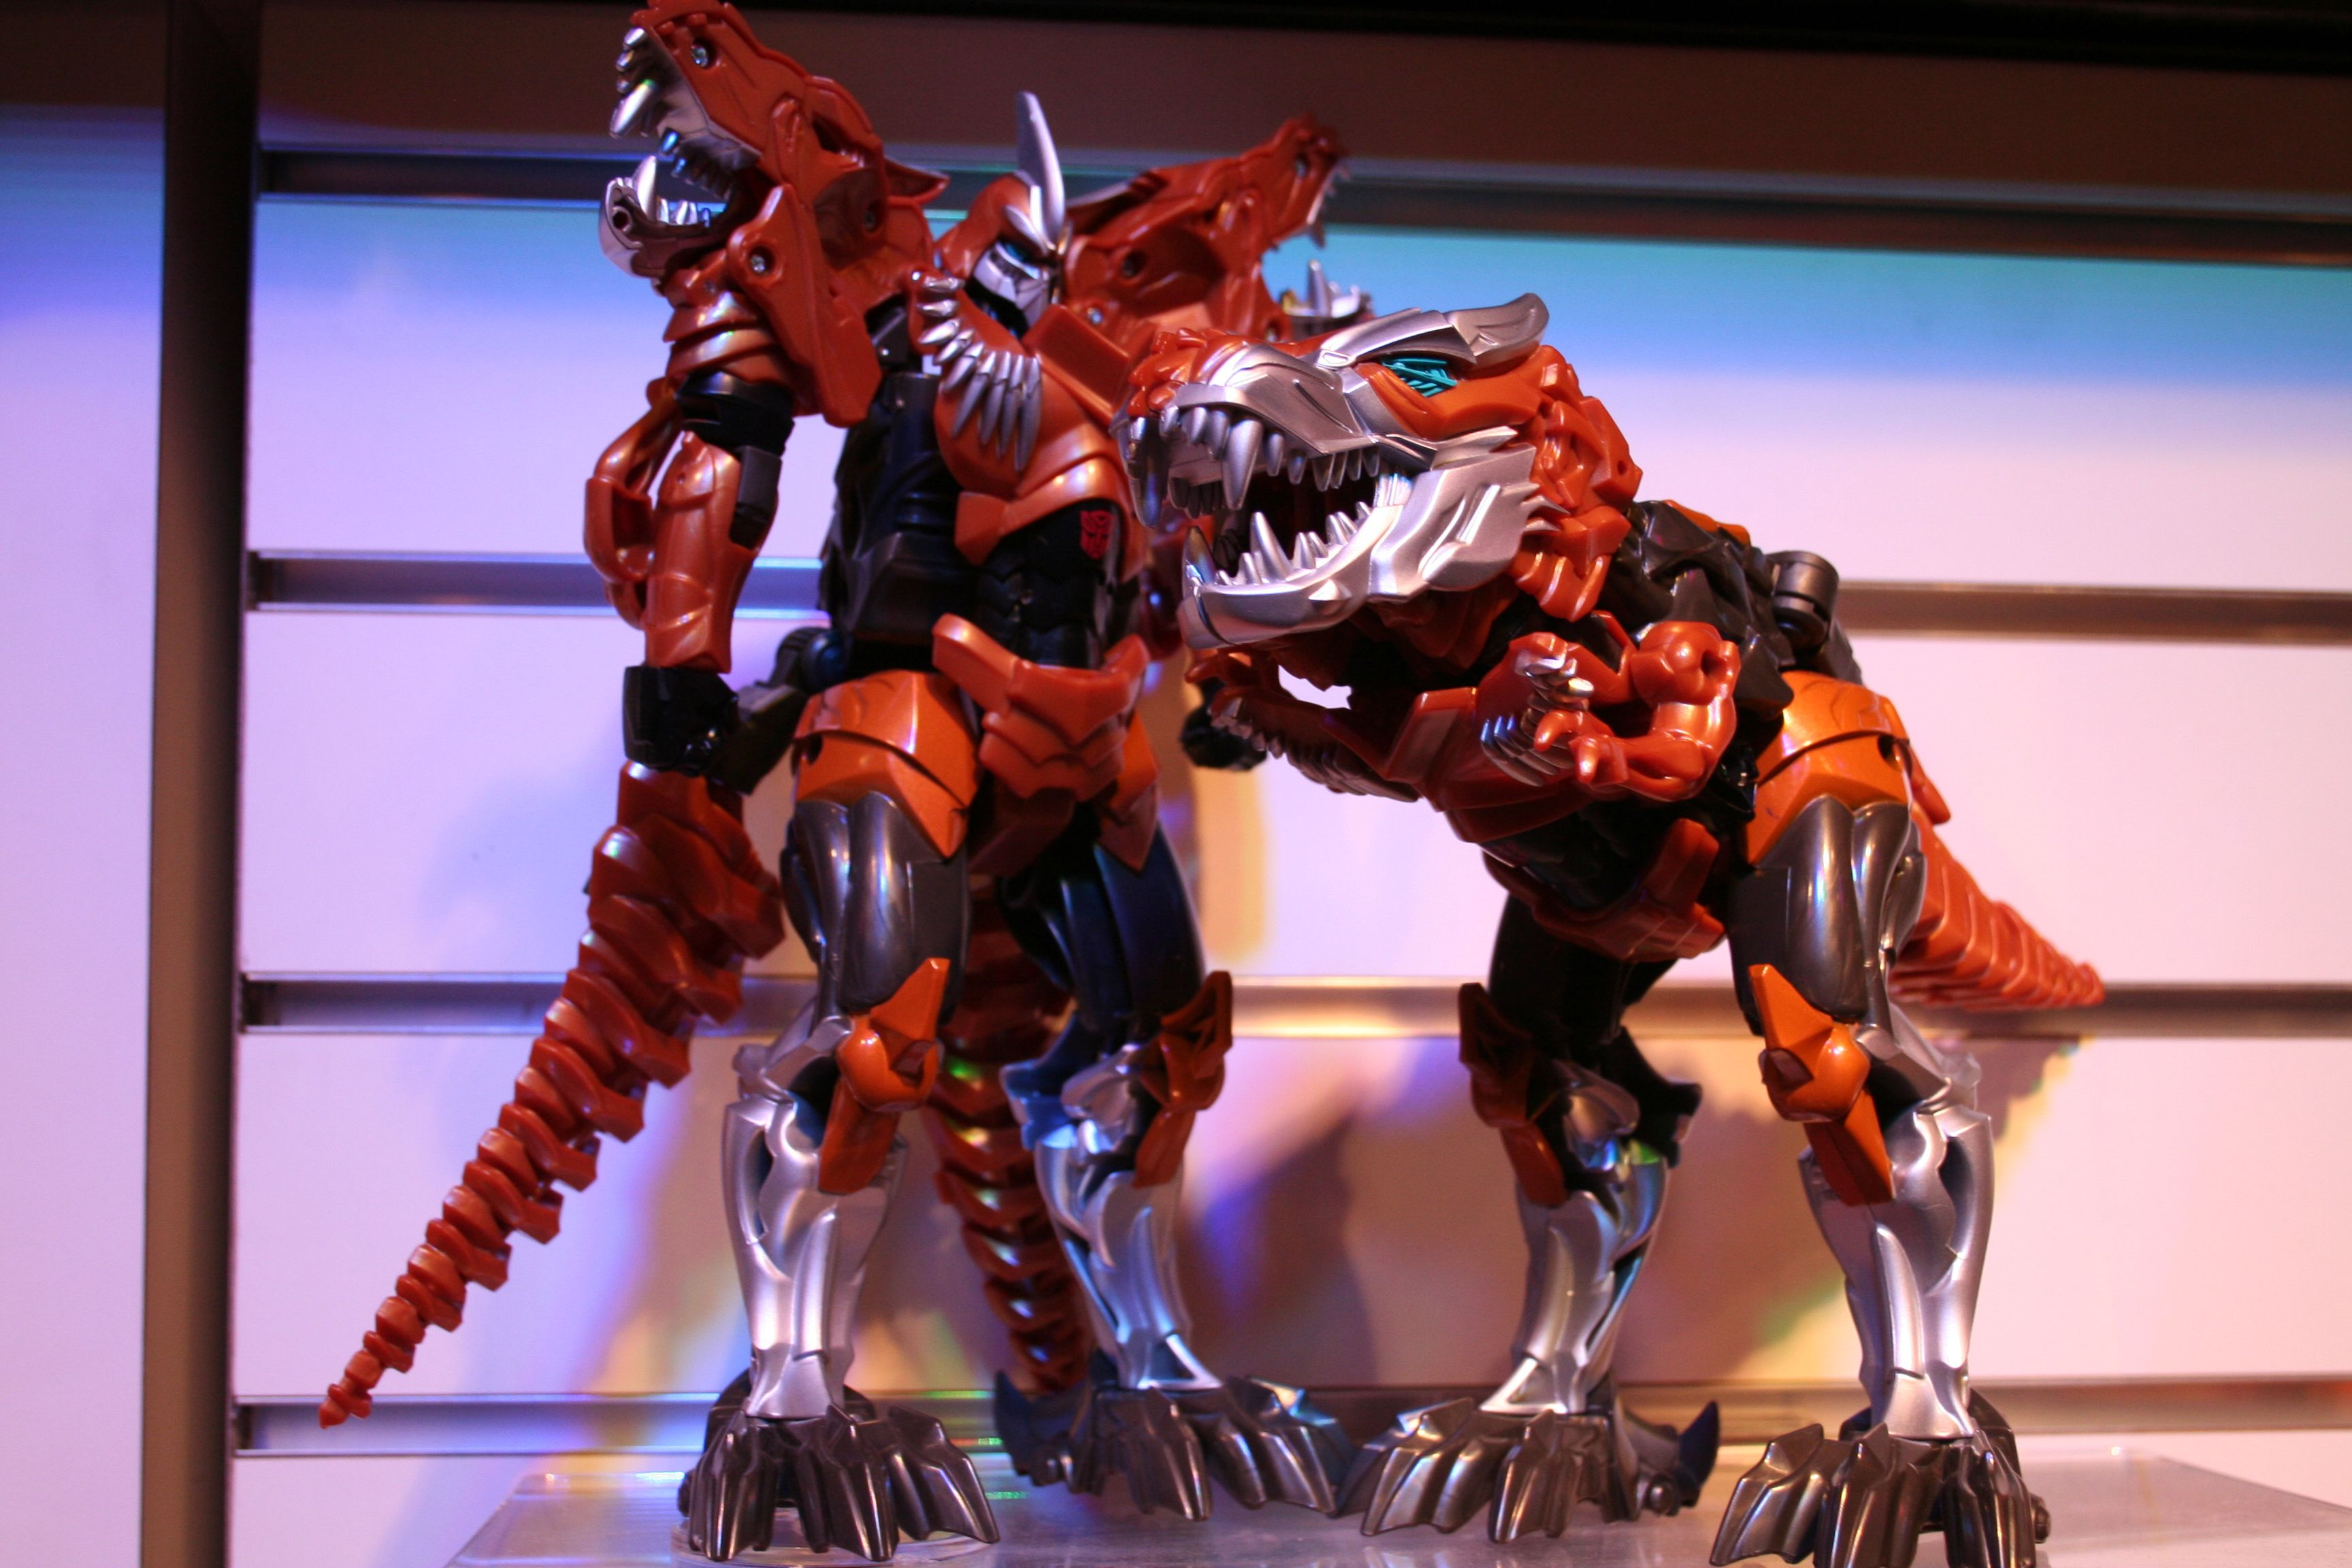 transformers 4 age of extinction toys and action figure images